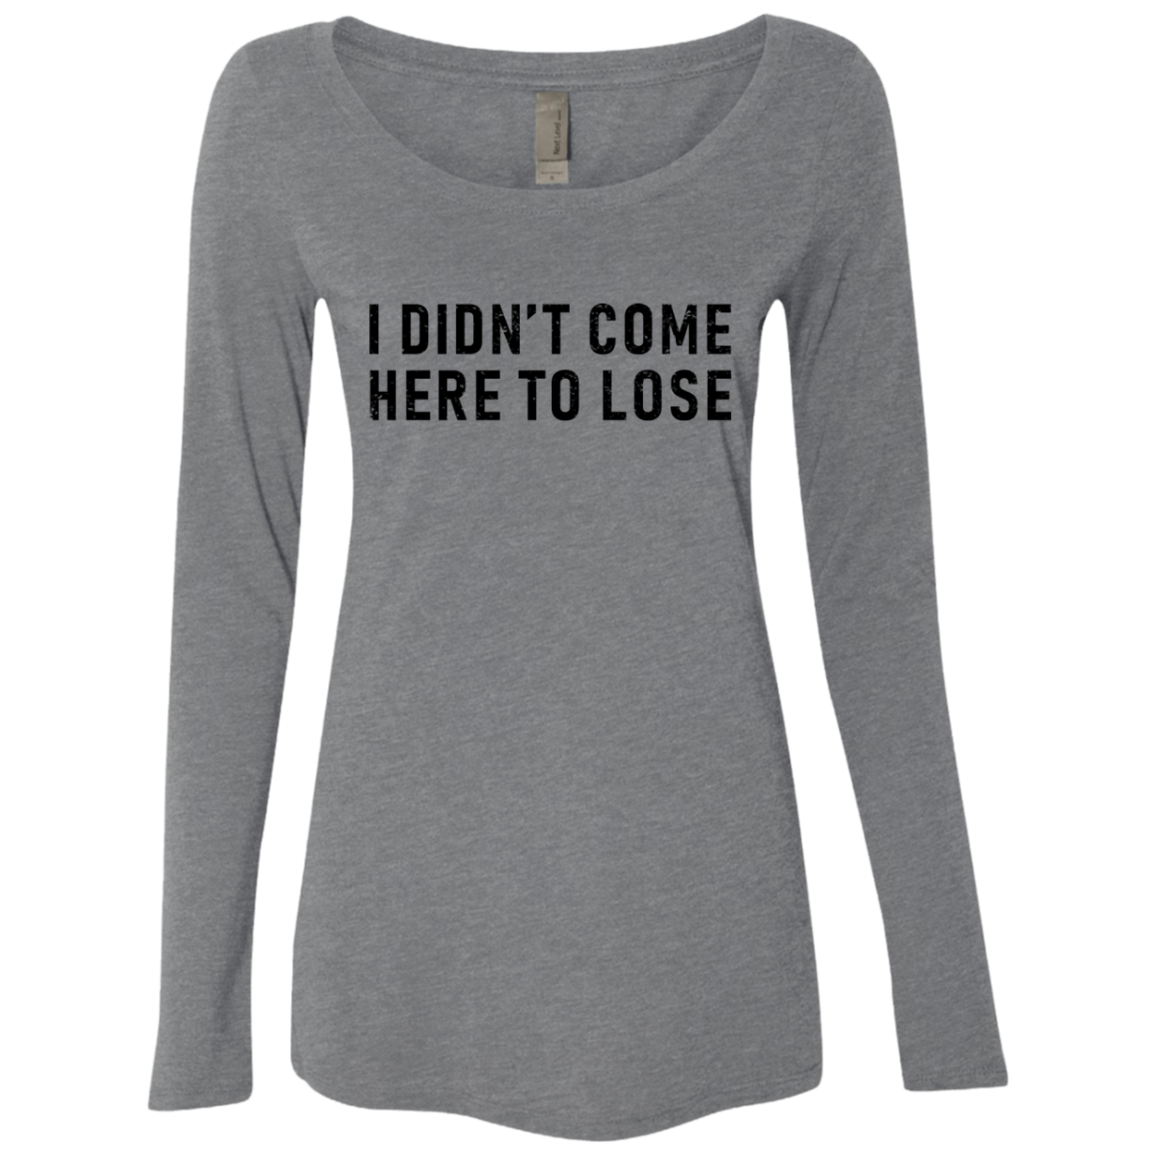 I Didn't Come Here To Lose Women's Long Sleeve Tee